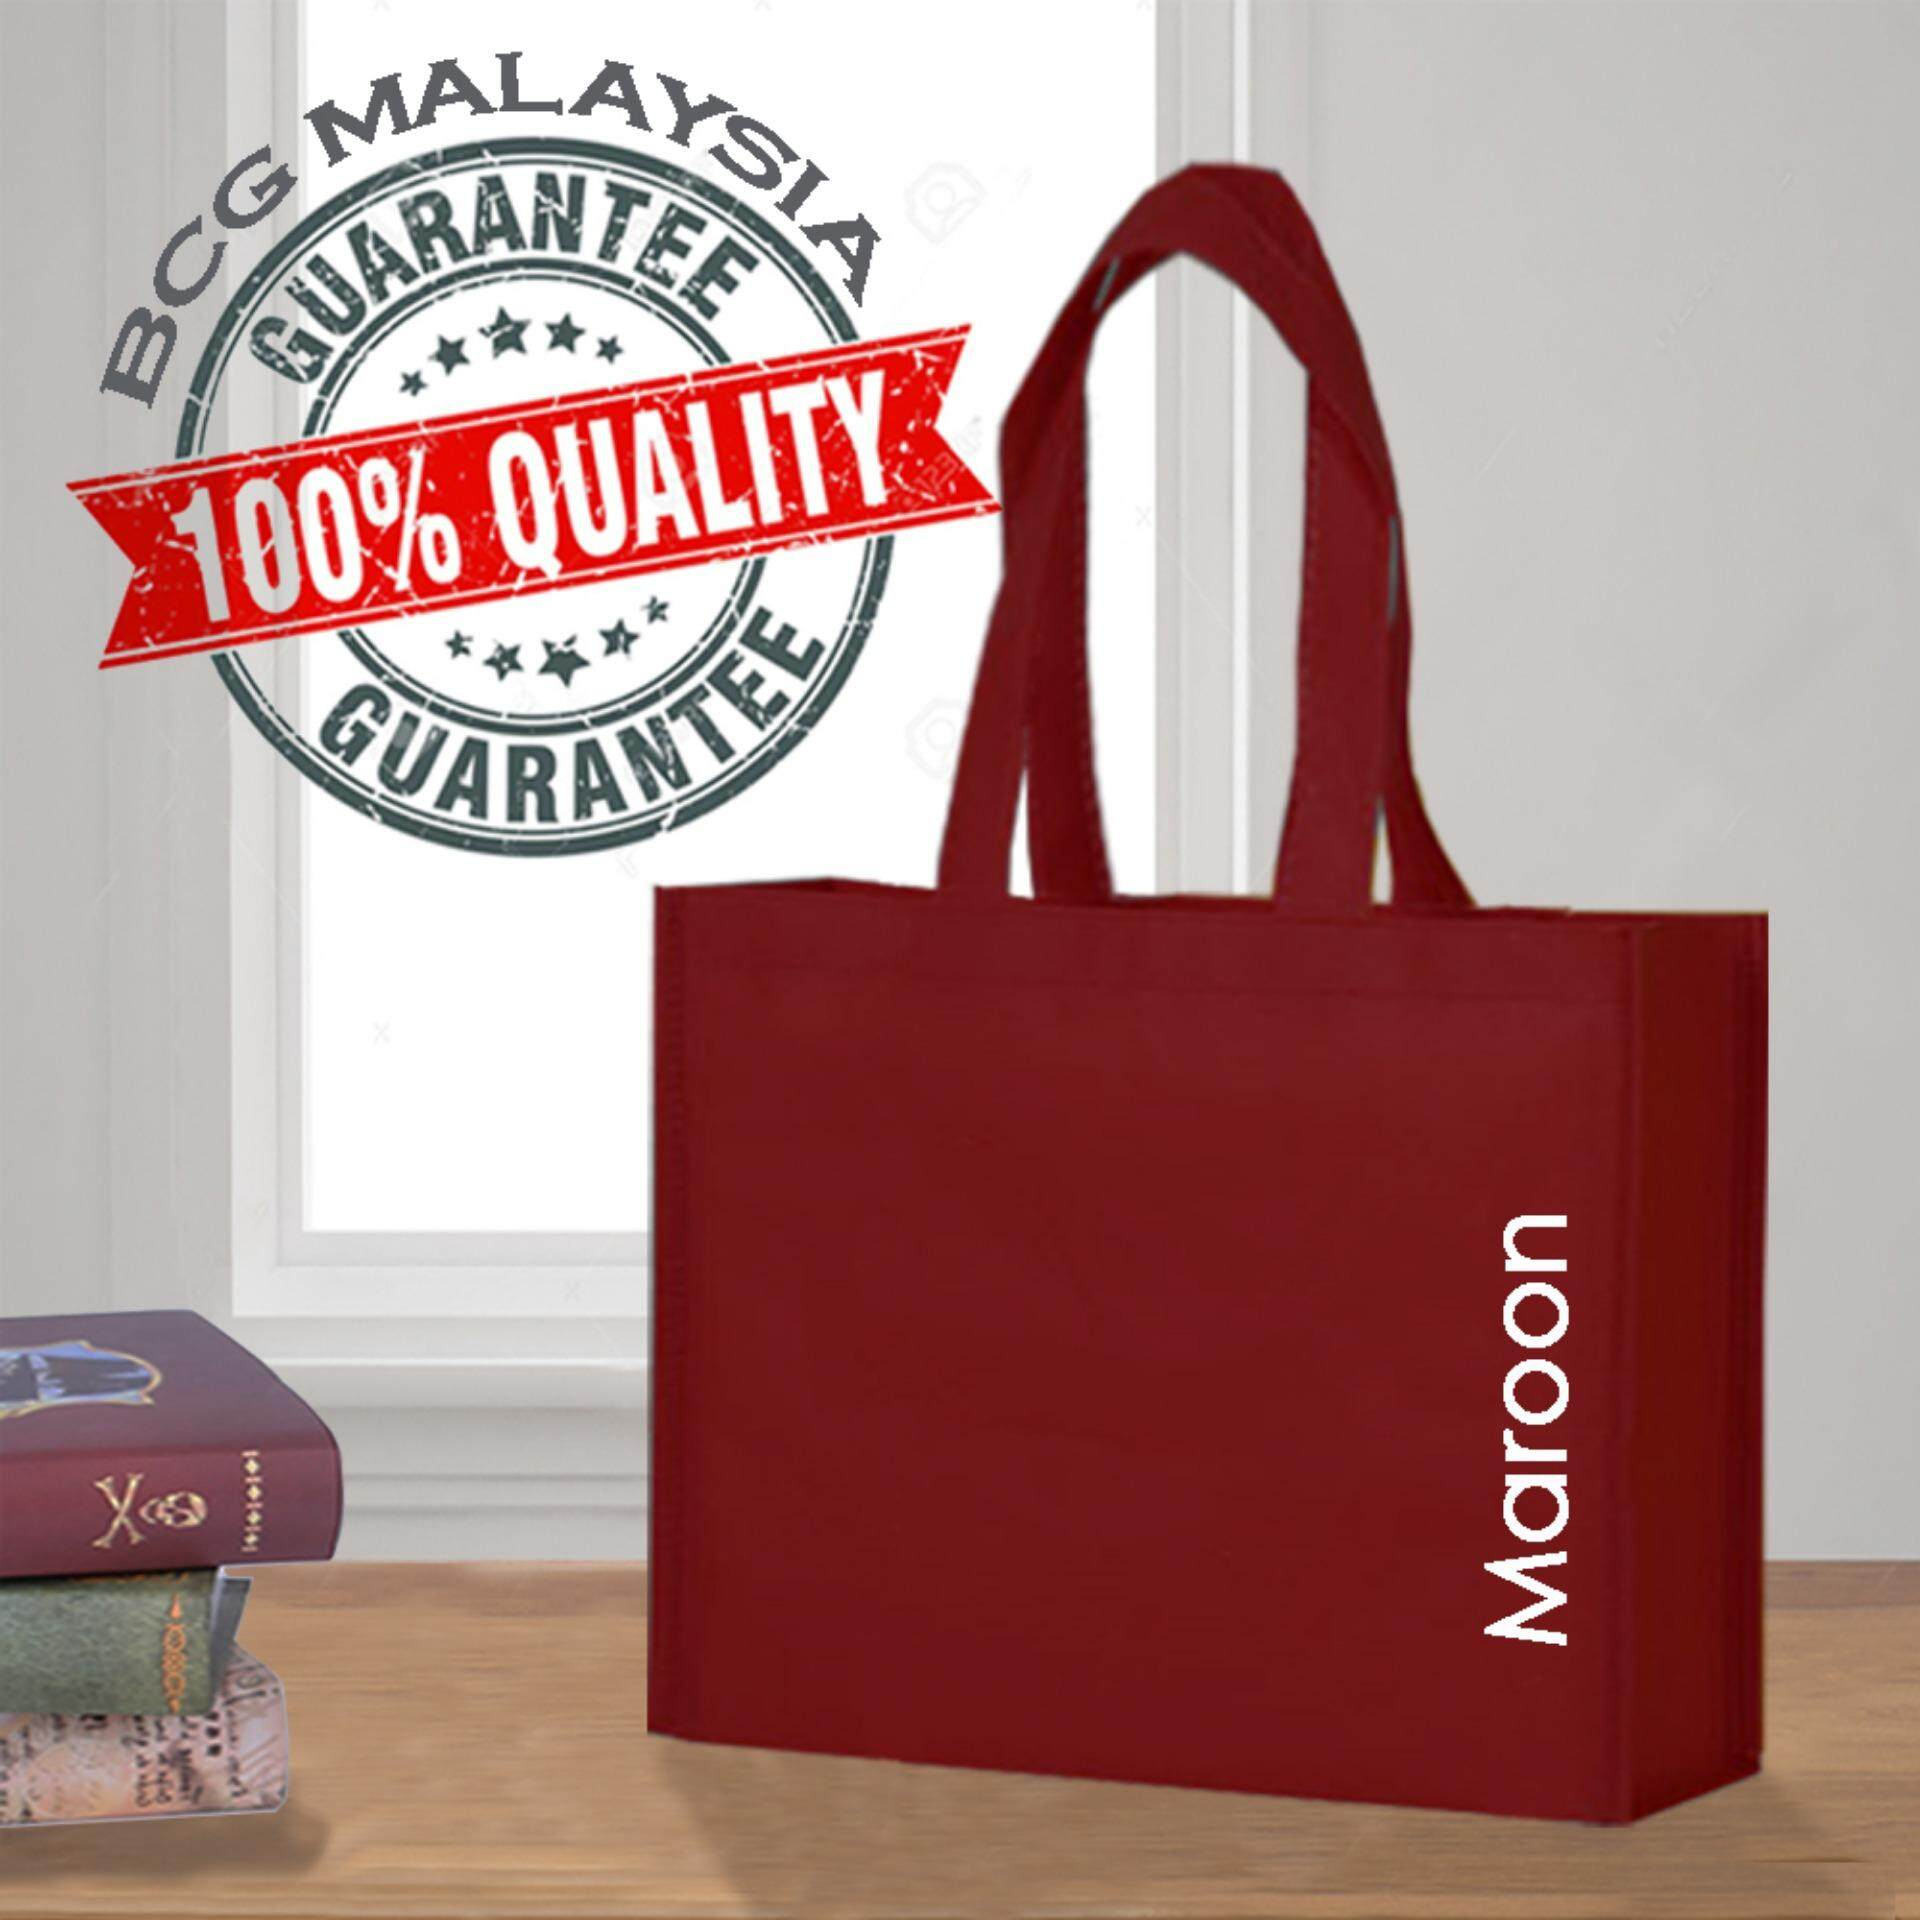 [Ready Stock] BCG Malaysia A3 Maroon Non Woven Bag Recycle Bag 100% Quality Assured